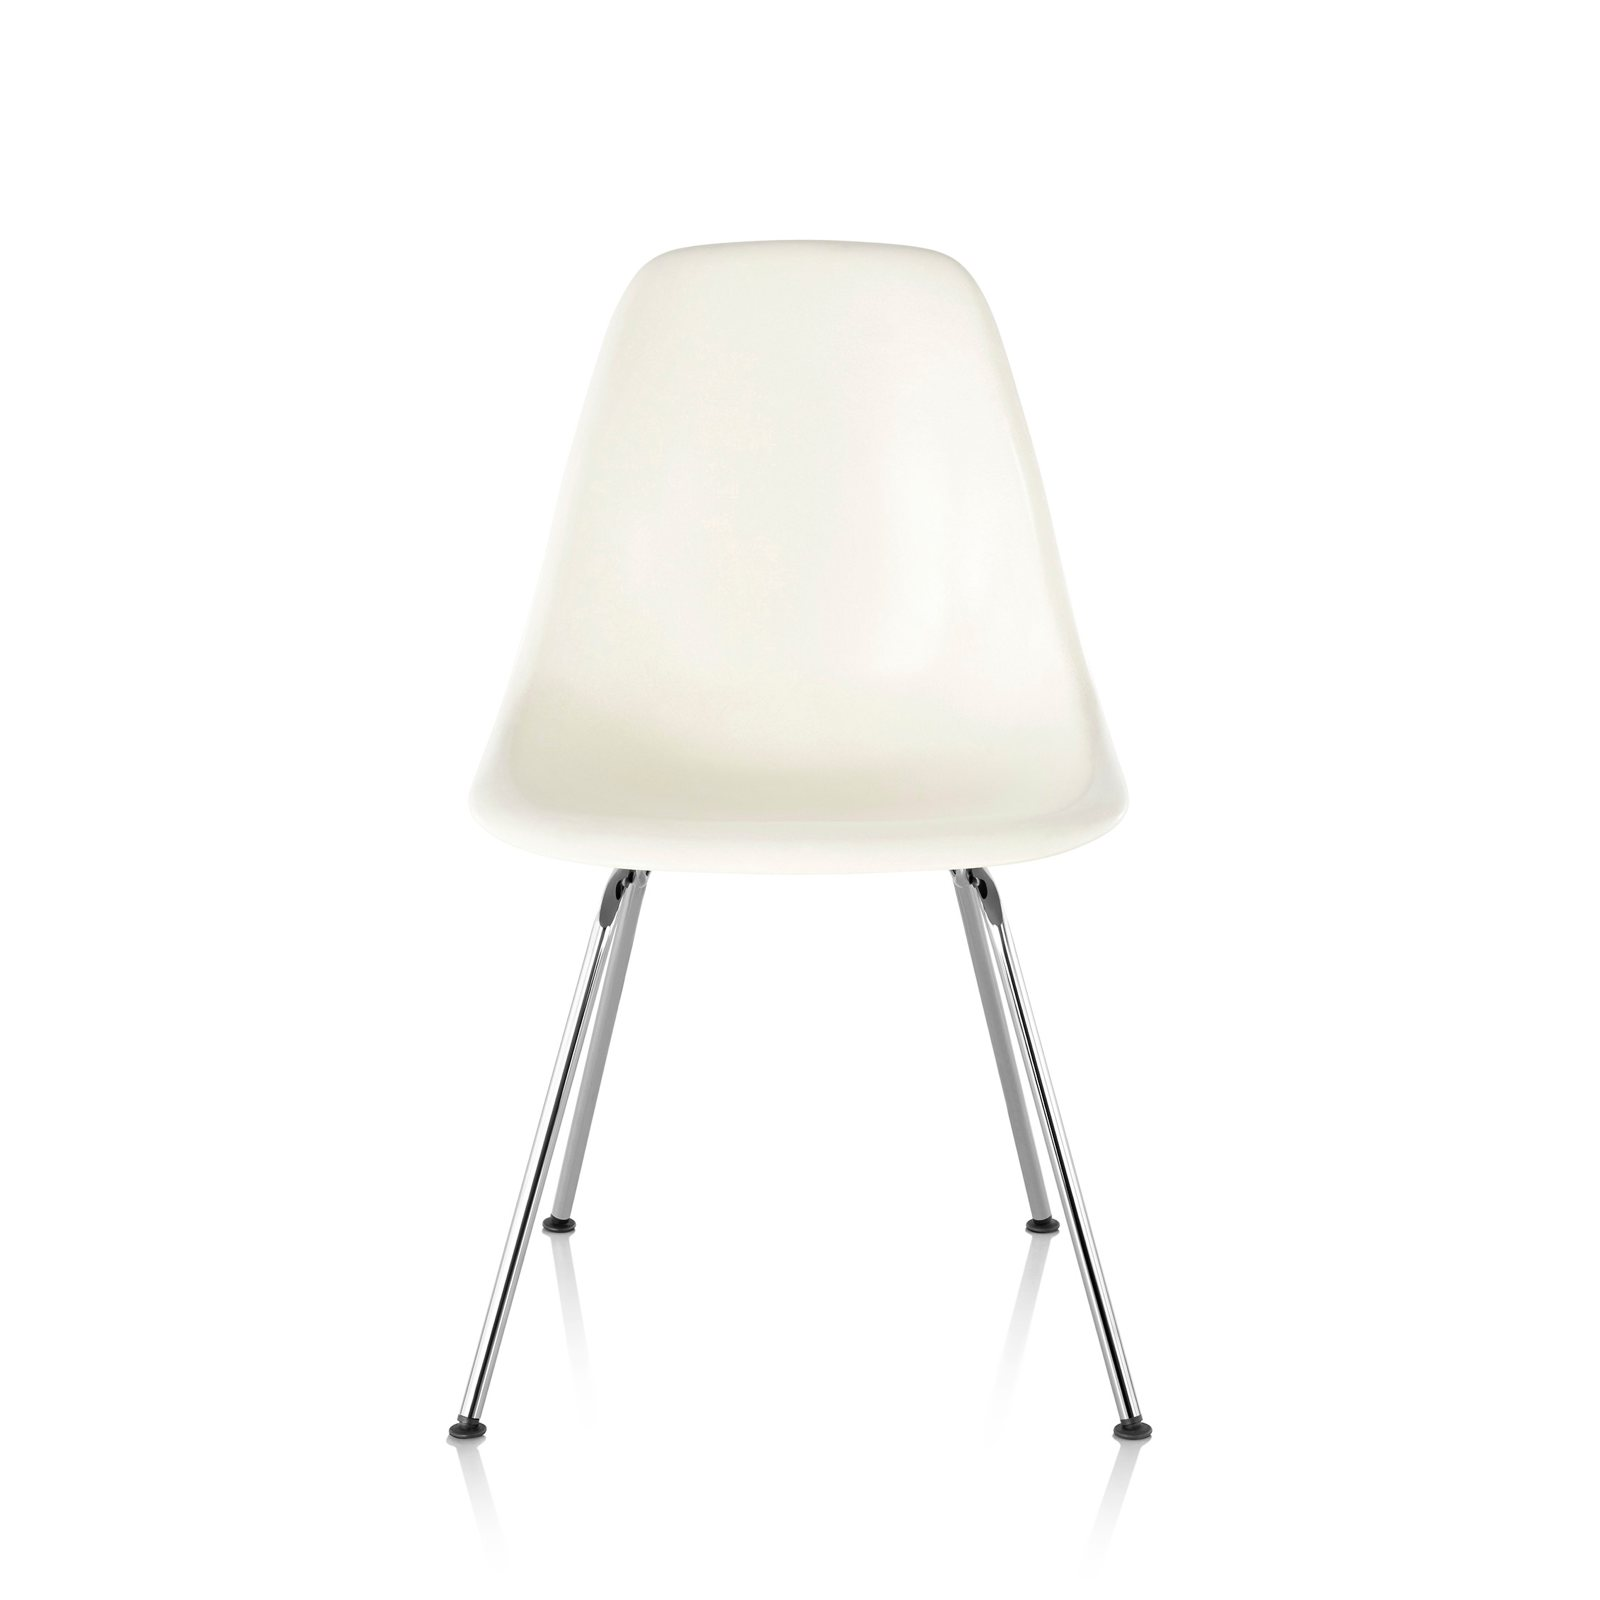 Herman Miller Eames Molded Plastic Chair eames molded plastic side chair 4-leg basecharles & ray eames